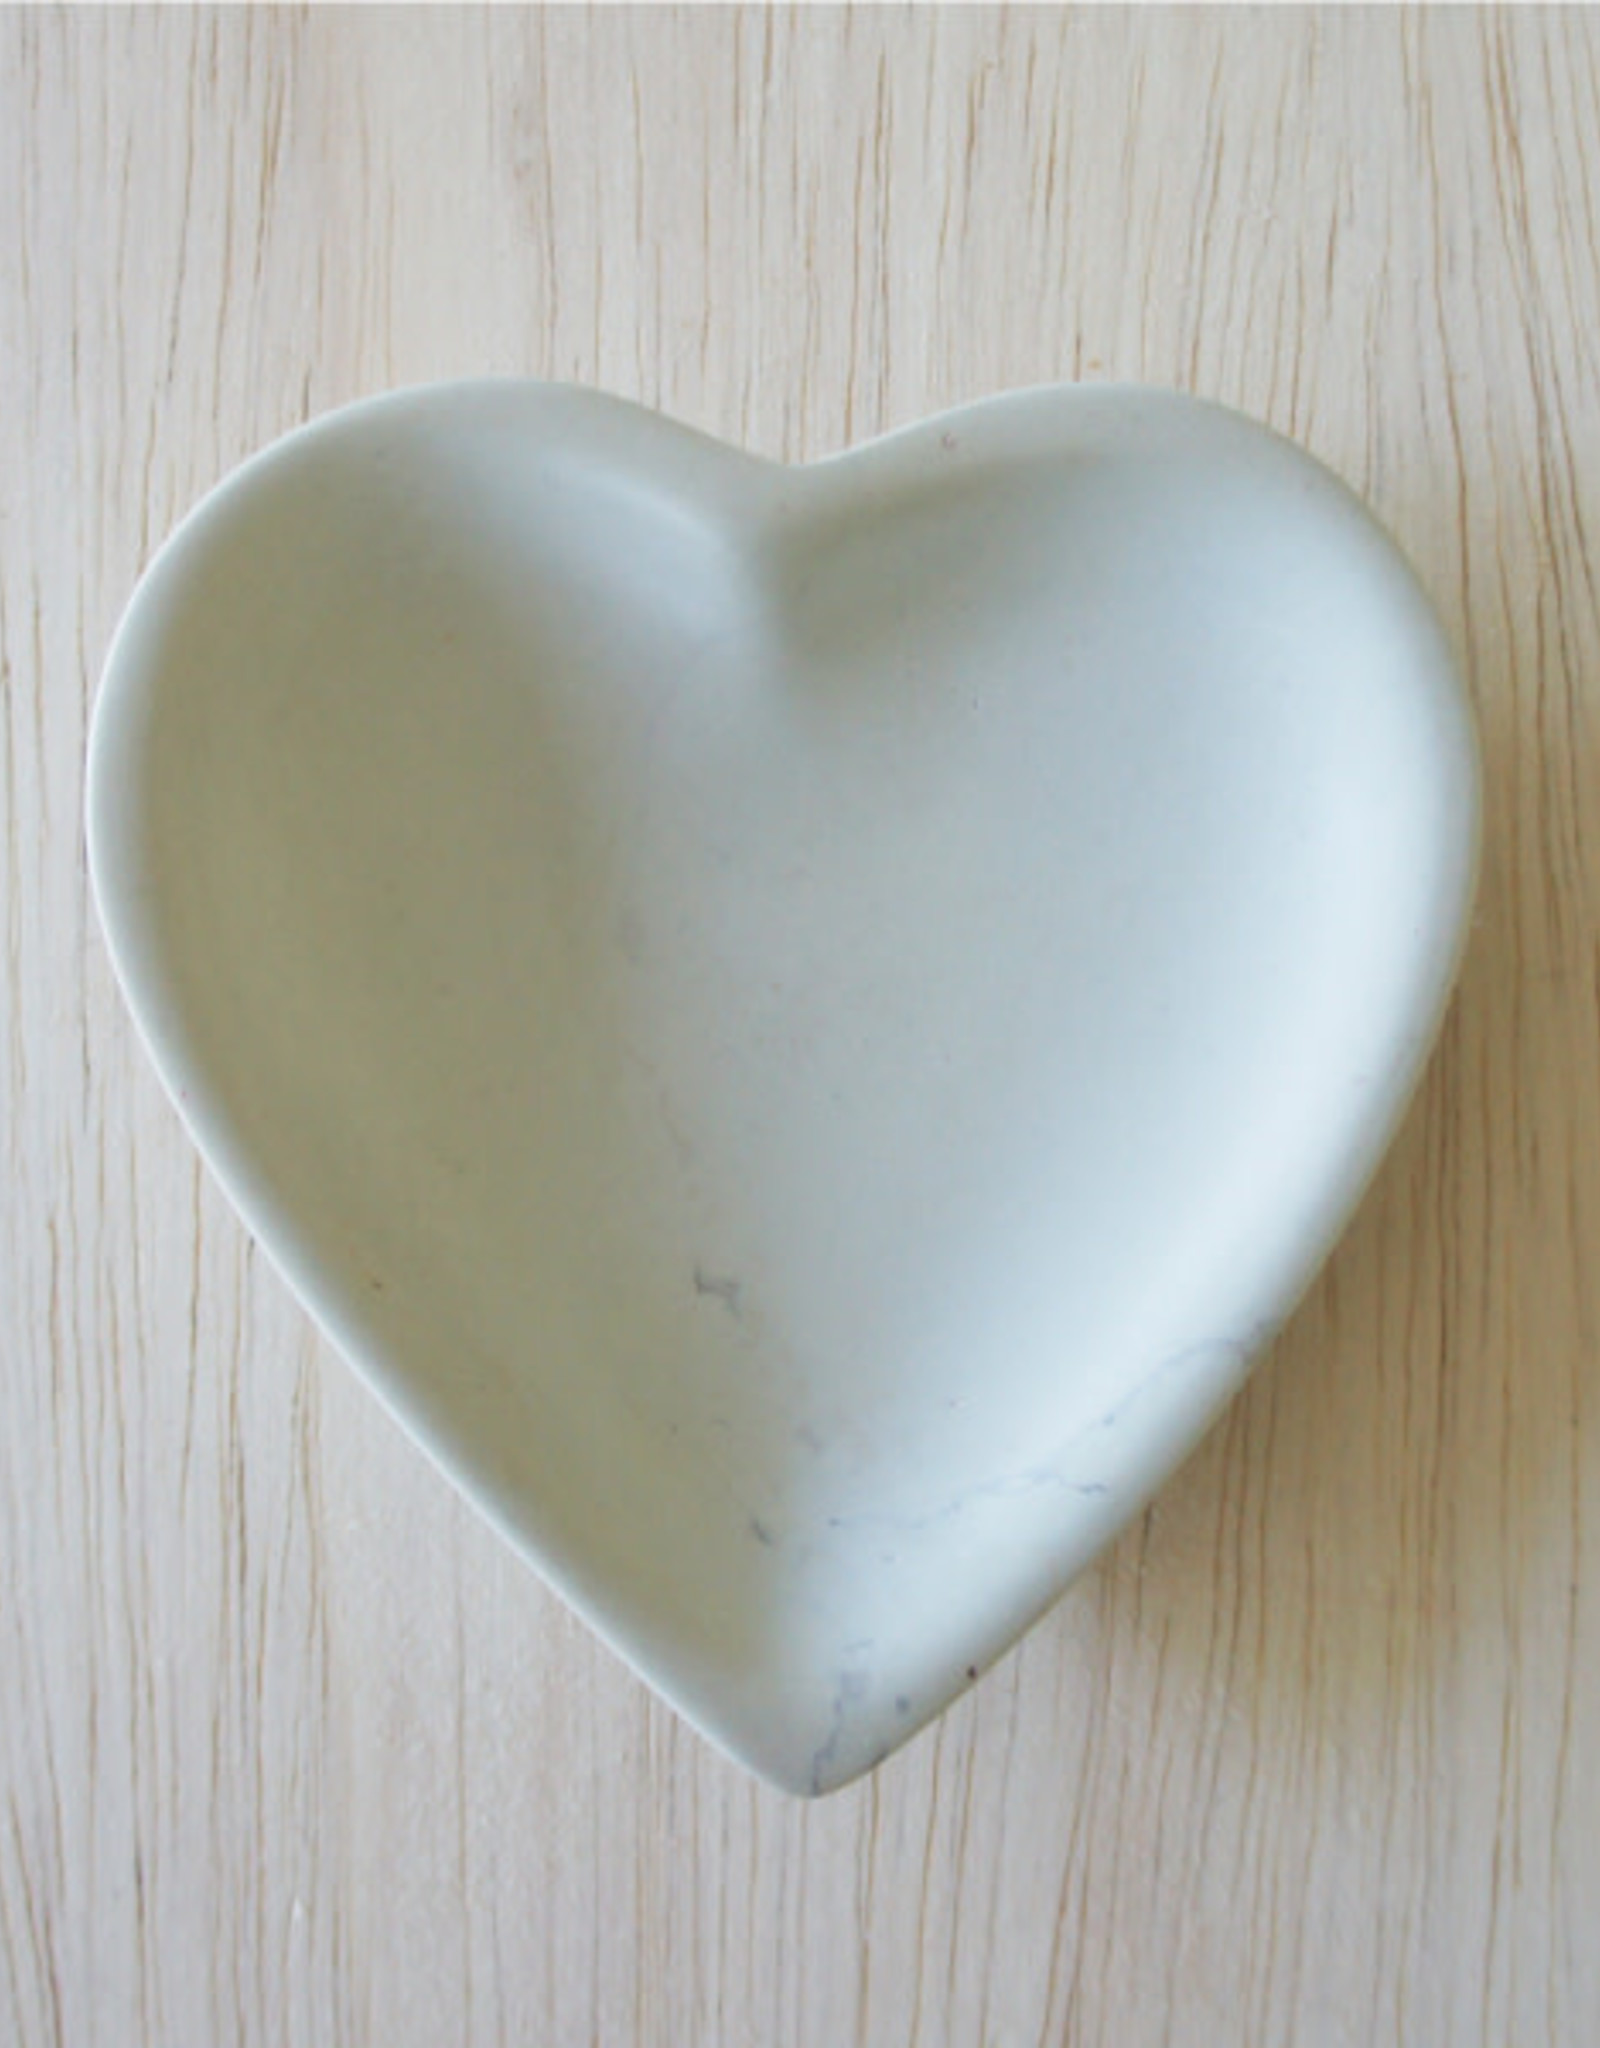 Kenya, Soapstone Small Heart Dish, Natural Stone